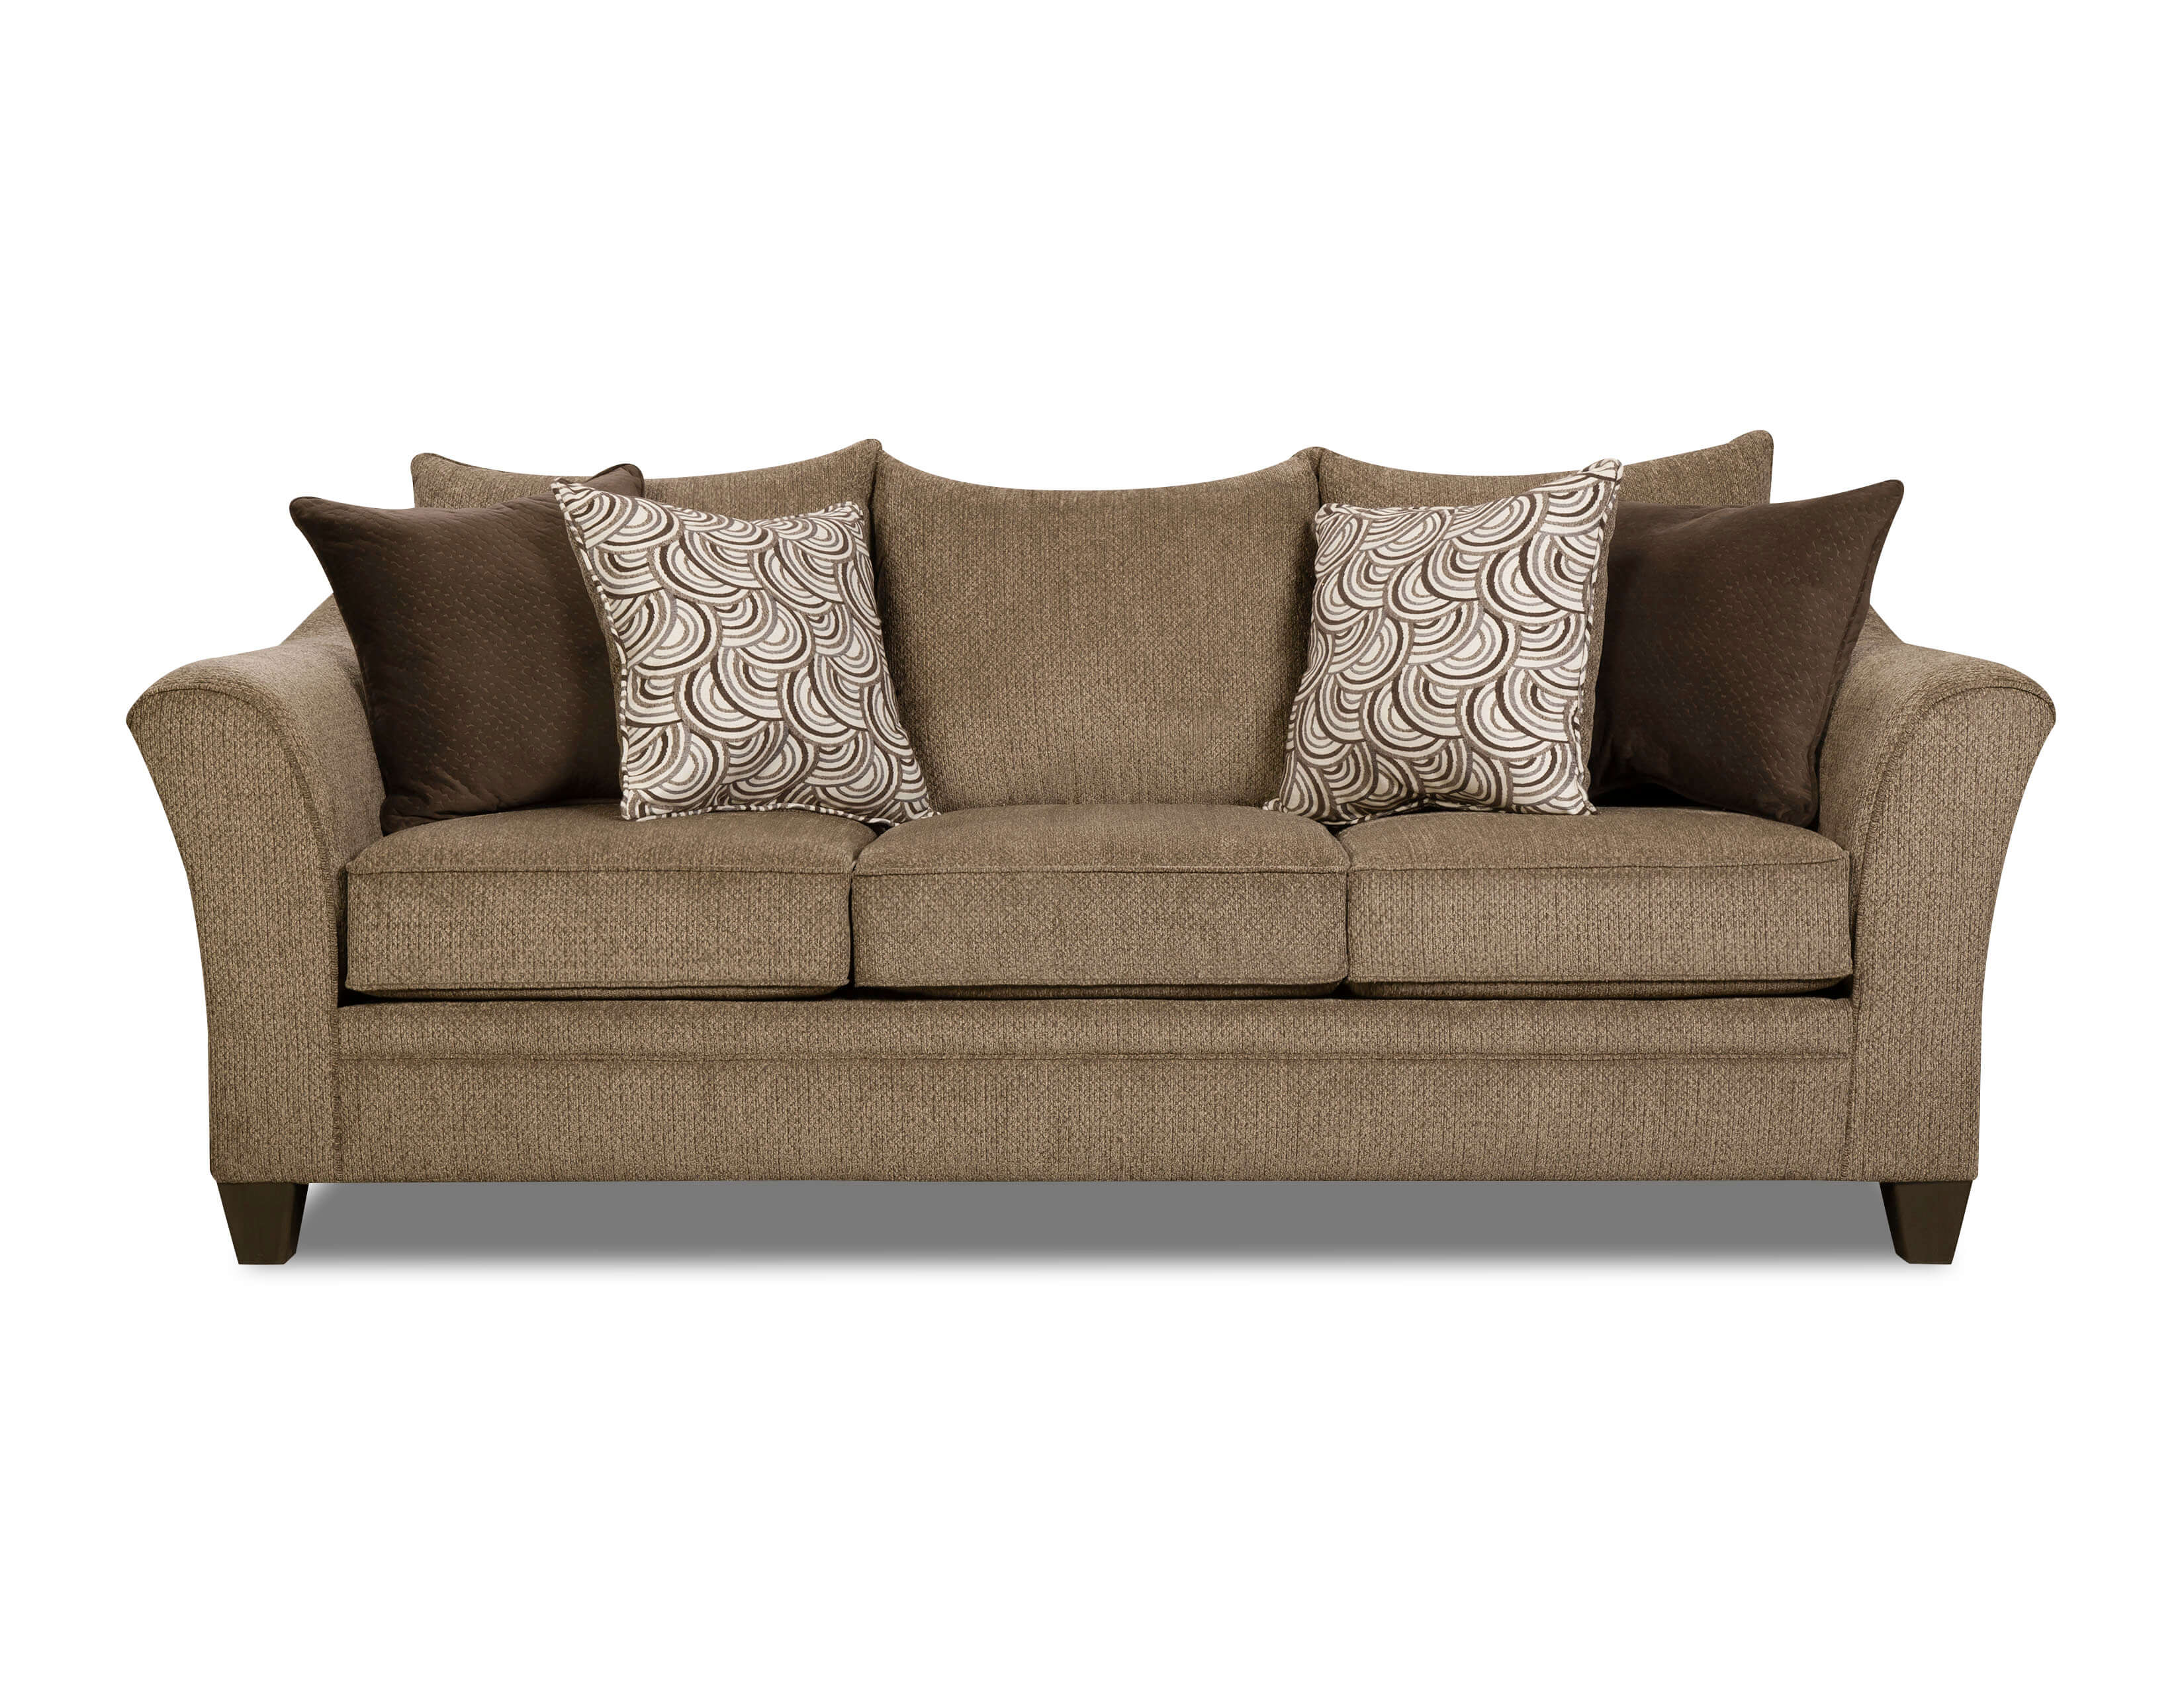 Albany Truffle Sofa and Loveseat by Simmons